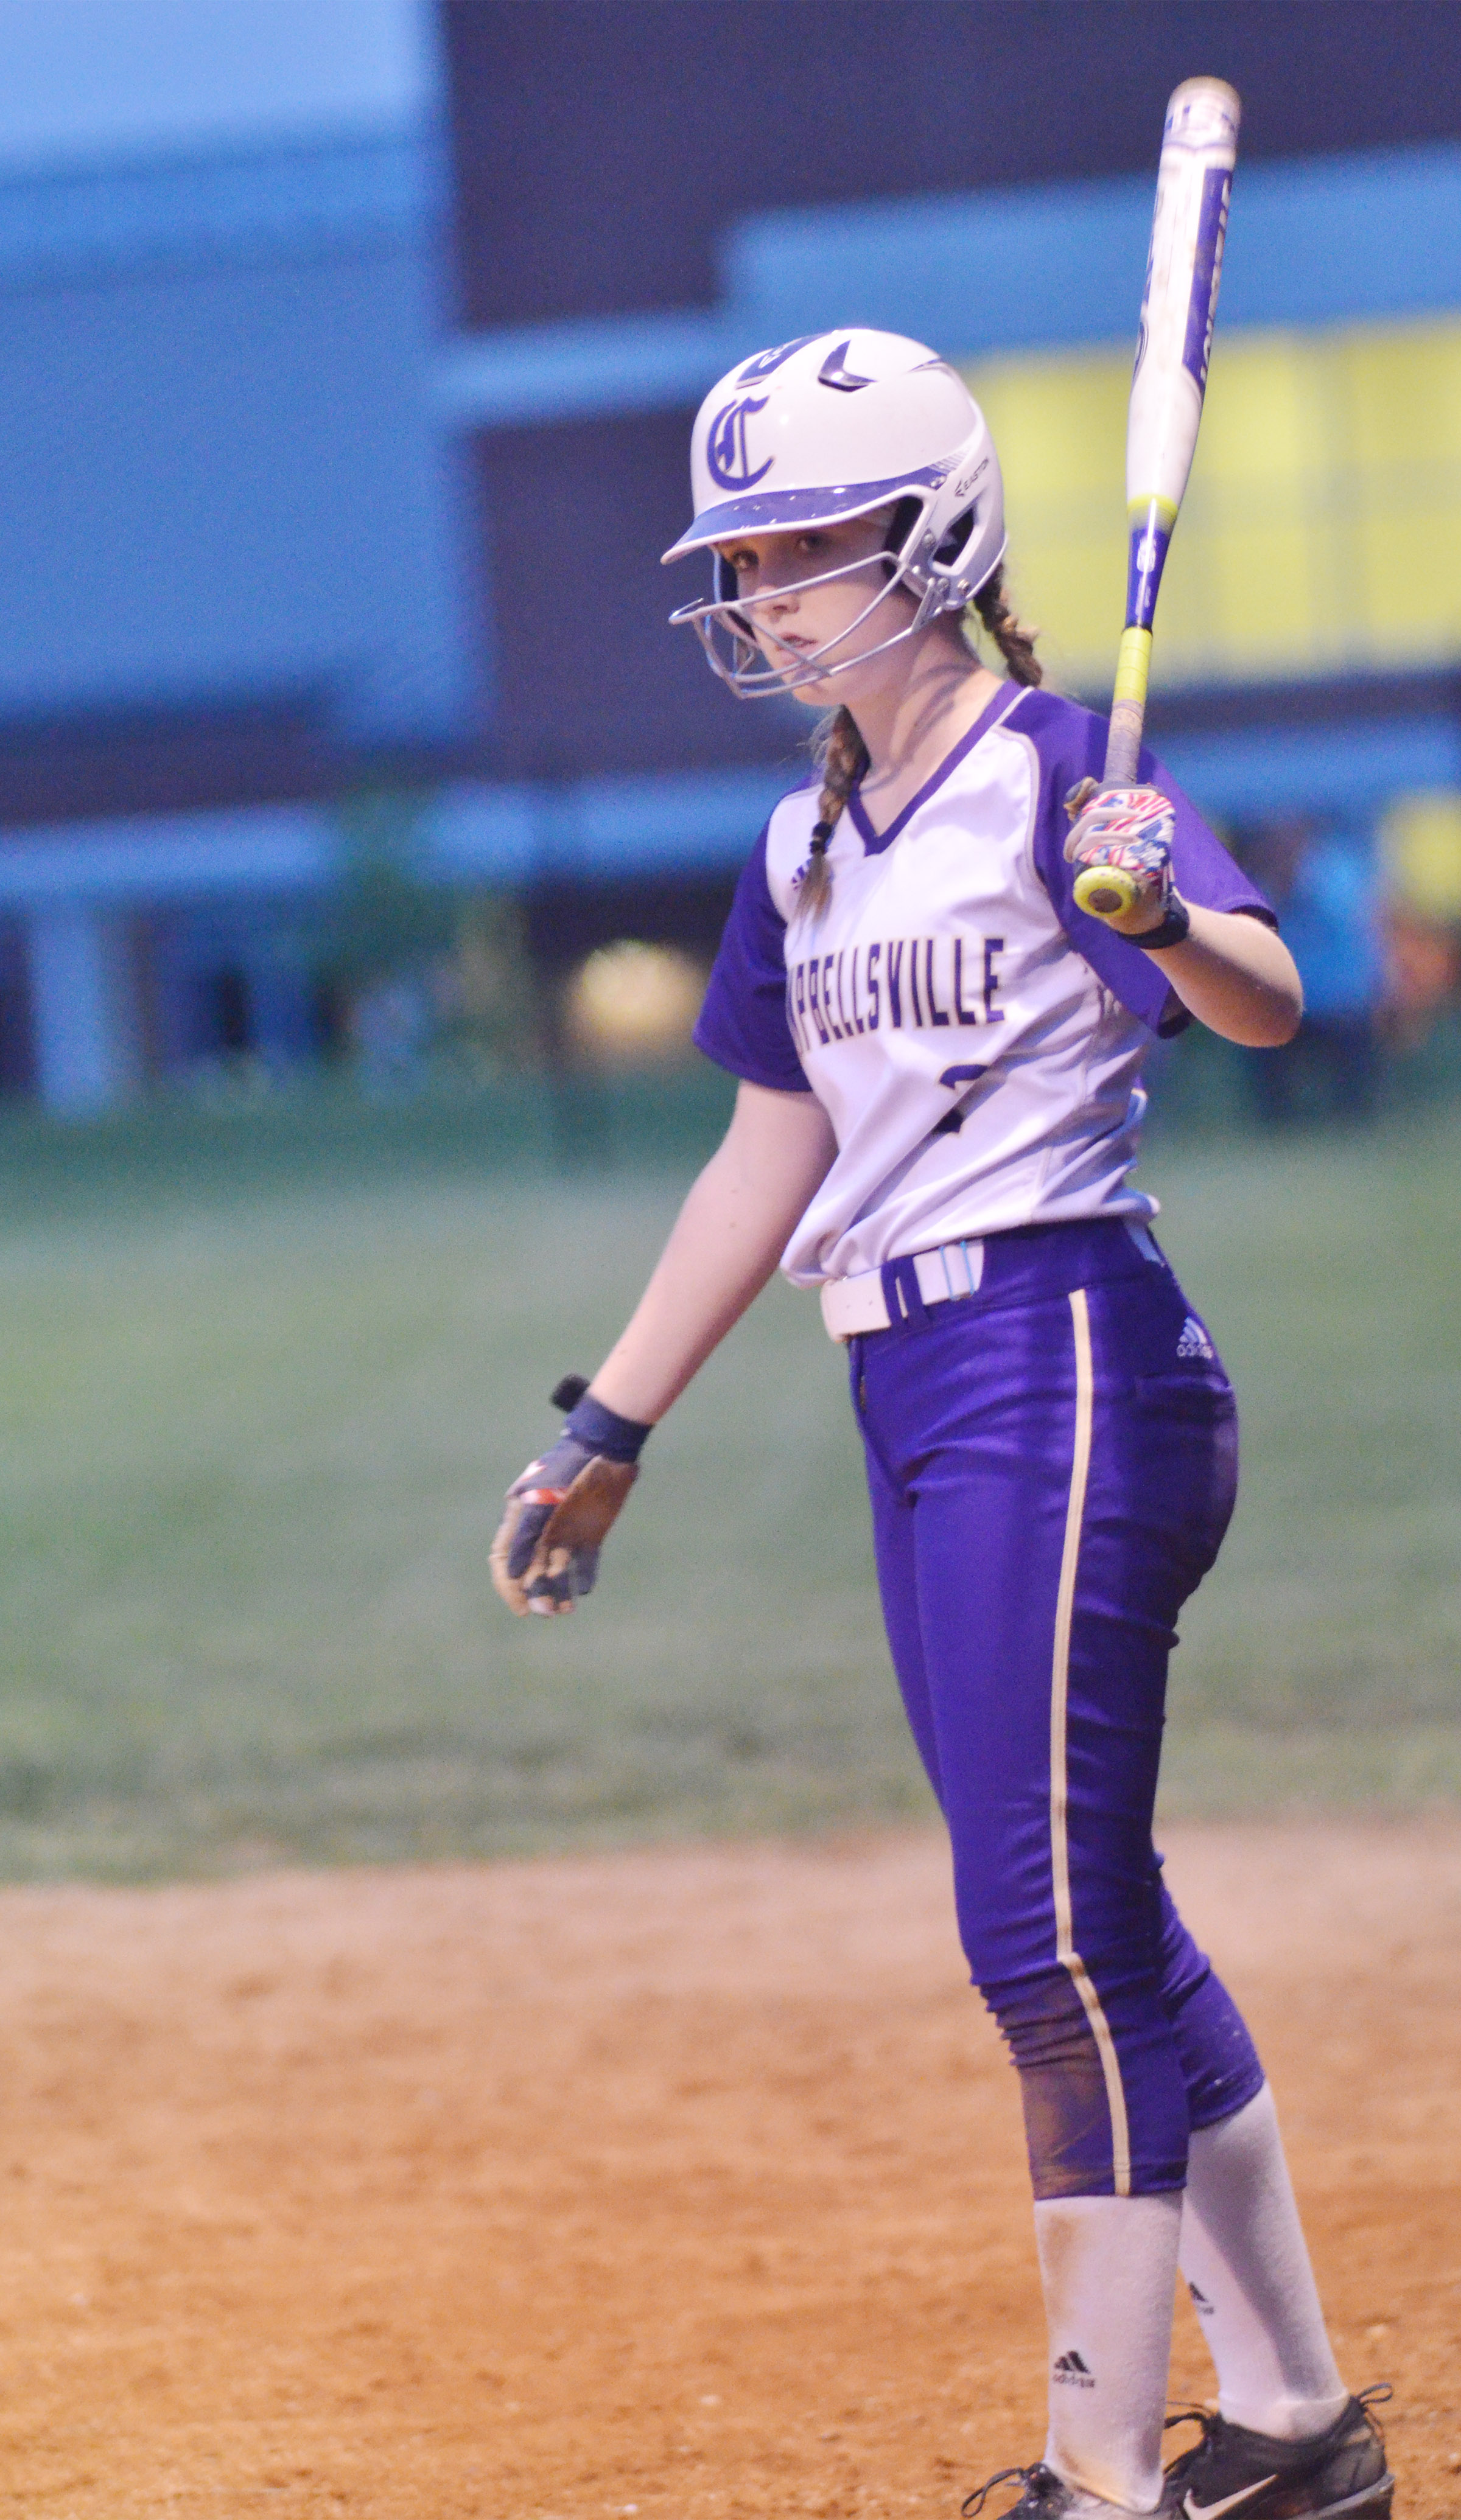 Campbellsville Middle School eighth-grader Catlyn Clausen gets set to bat.